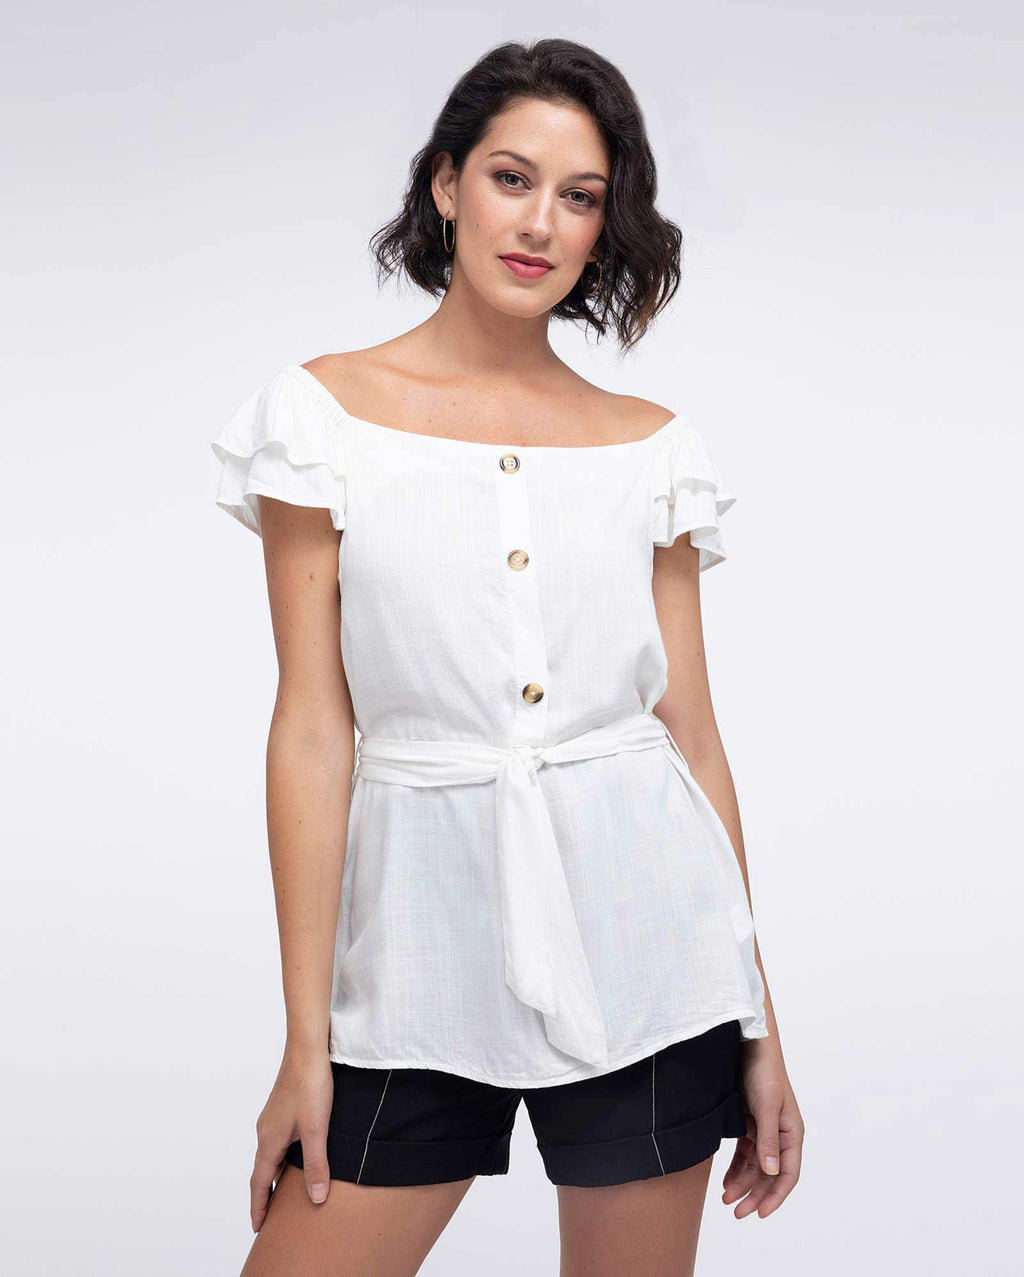 Blusa Strapless Mujer Blanco